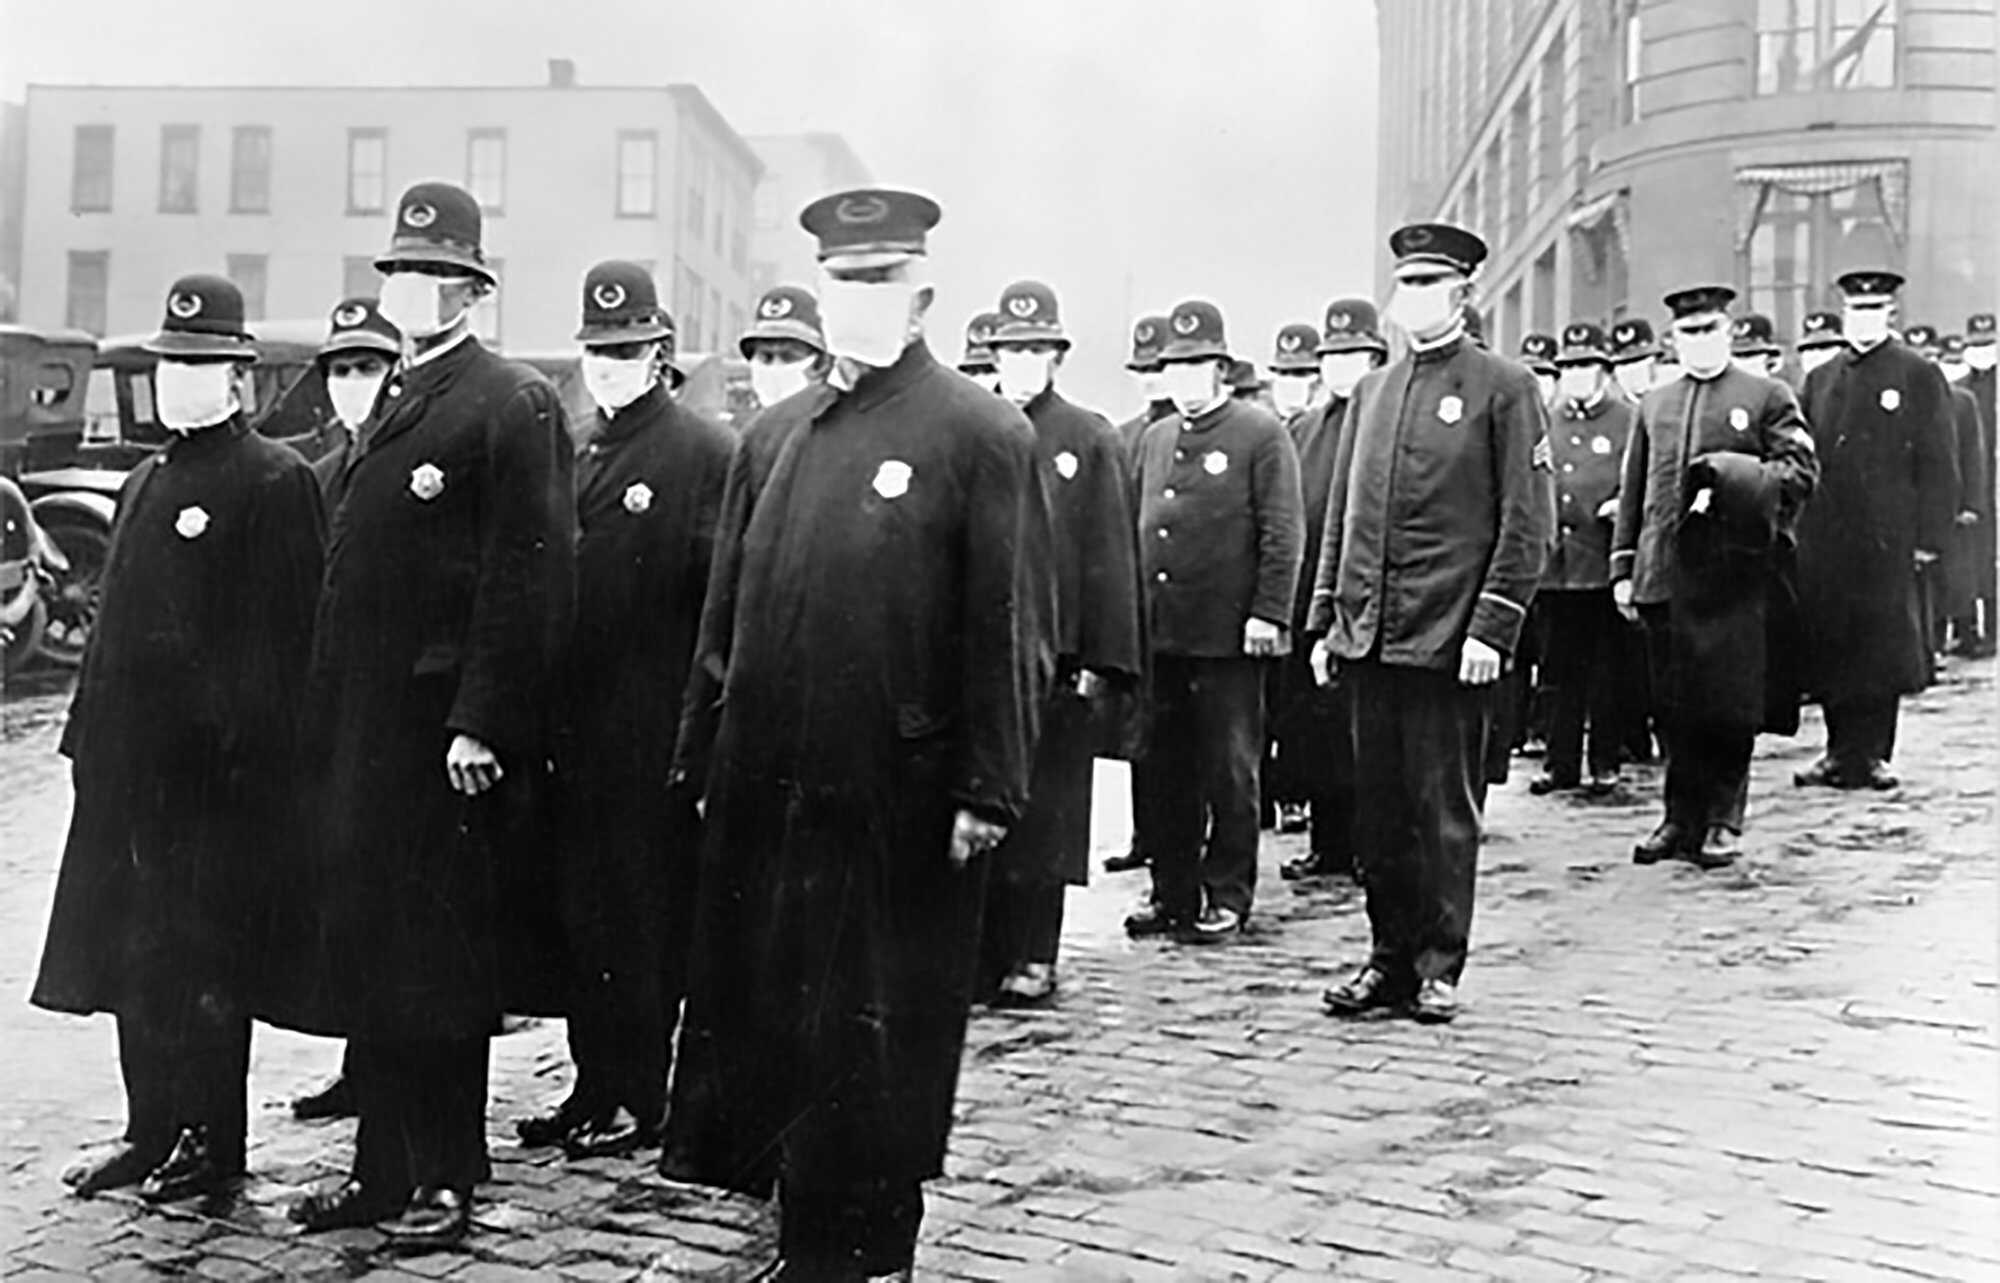 Influenza-Blue-Seattle-Police-1918-NARA.jpg